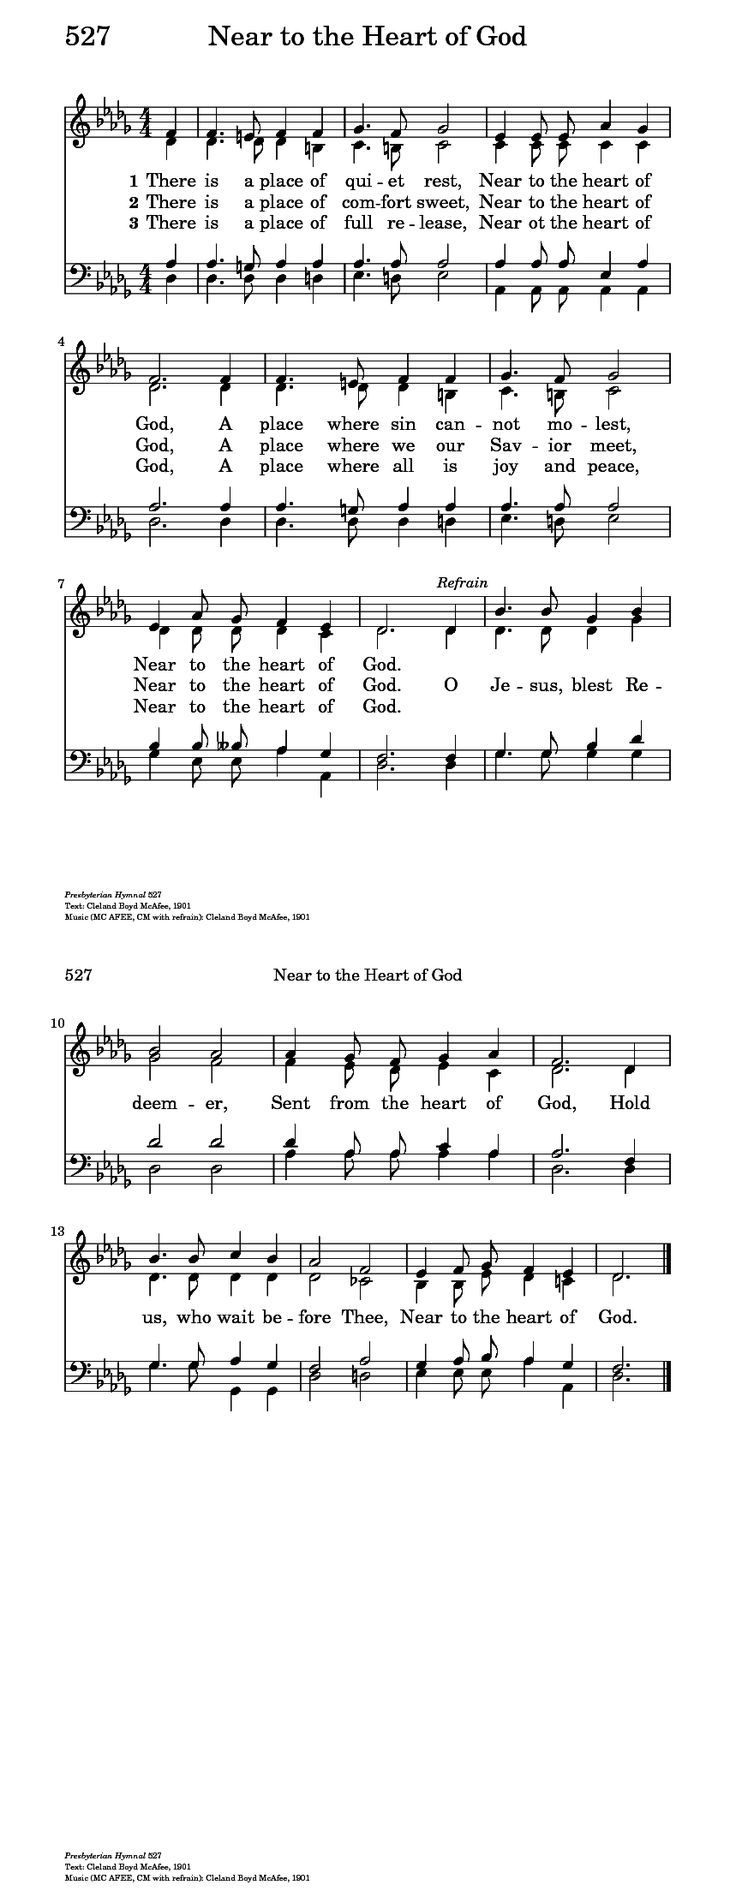 Near to the Heart of God - Hymnary.org